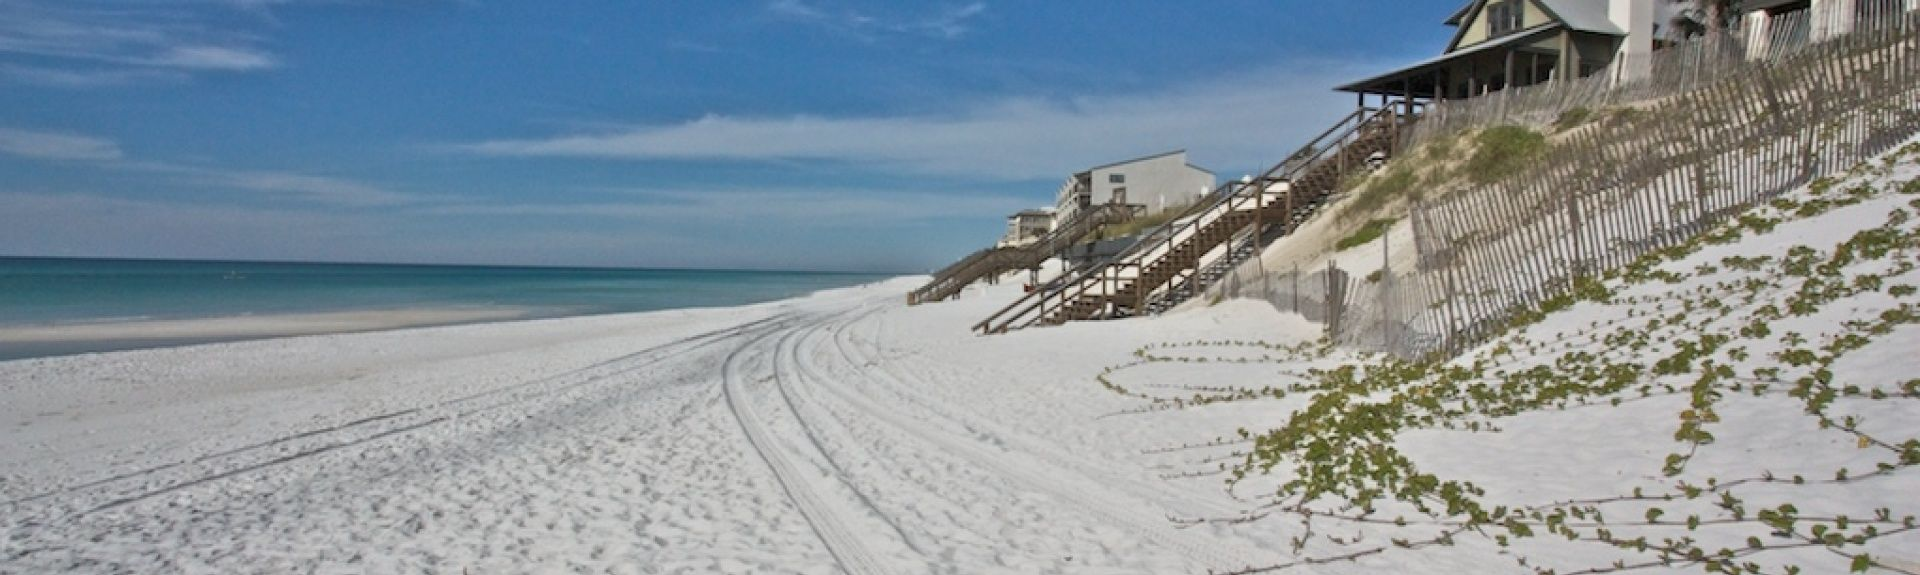 Pinnacle Port, Panama City Beach, Florida, United States of America